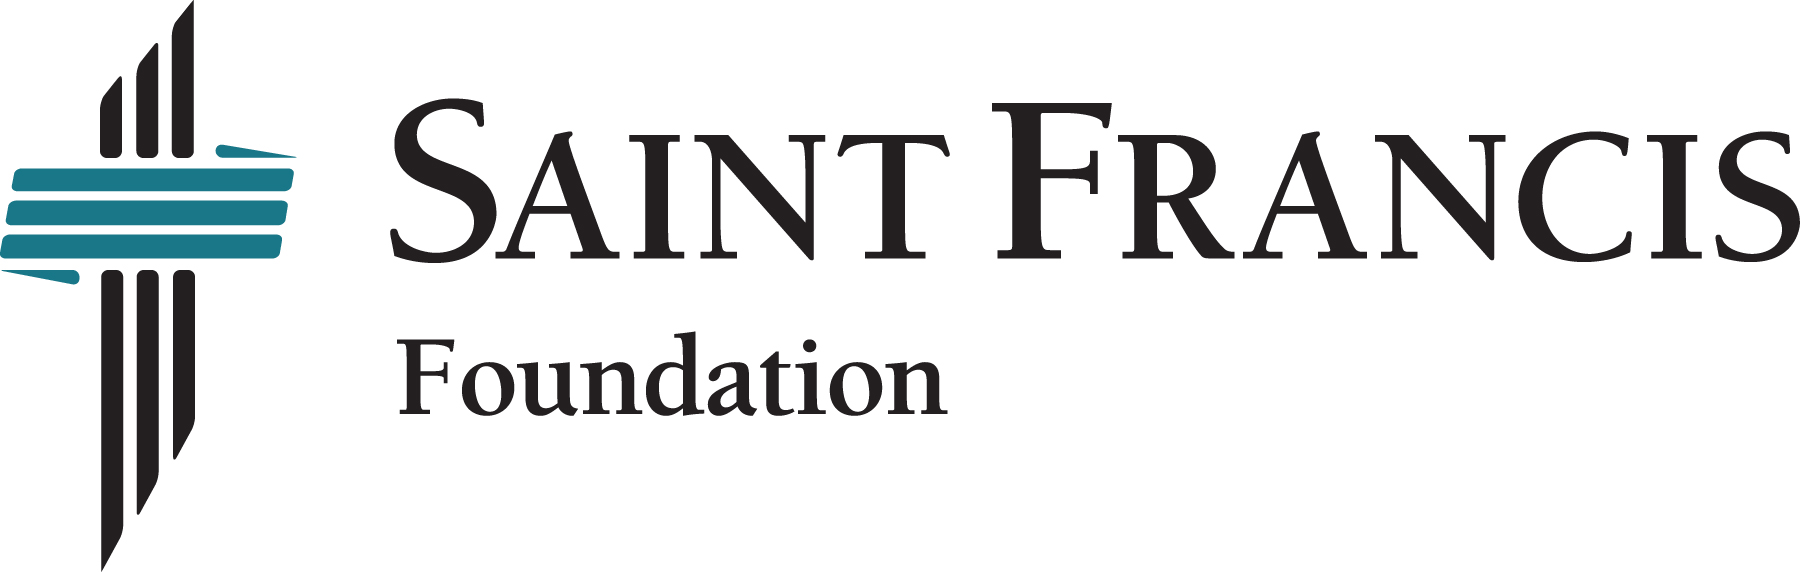 Saint Francis Foundation's Logo